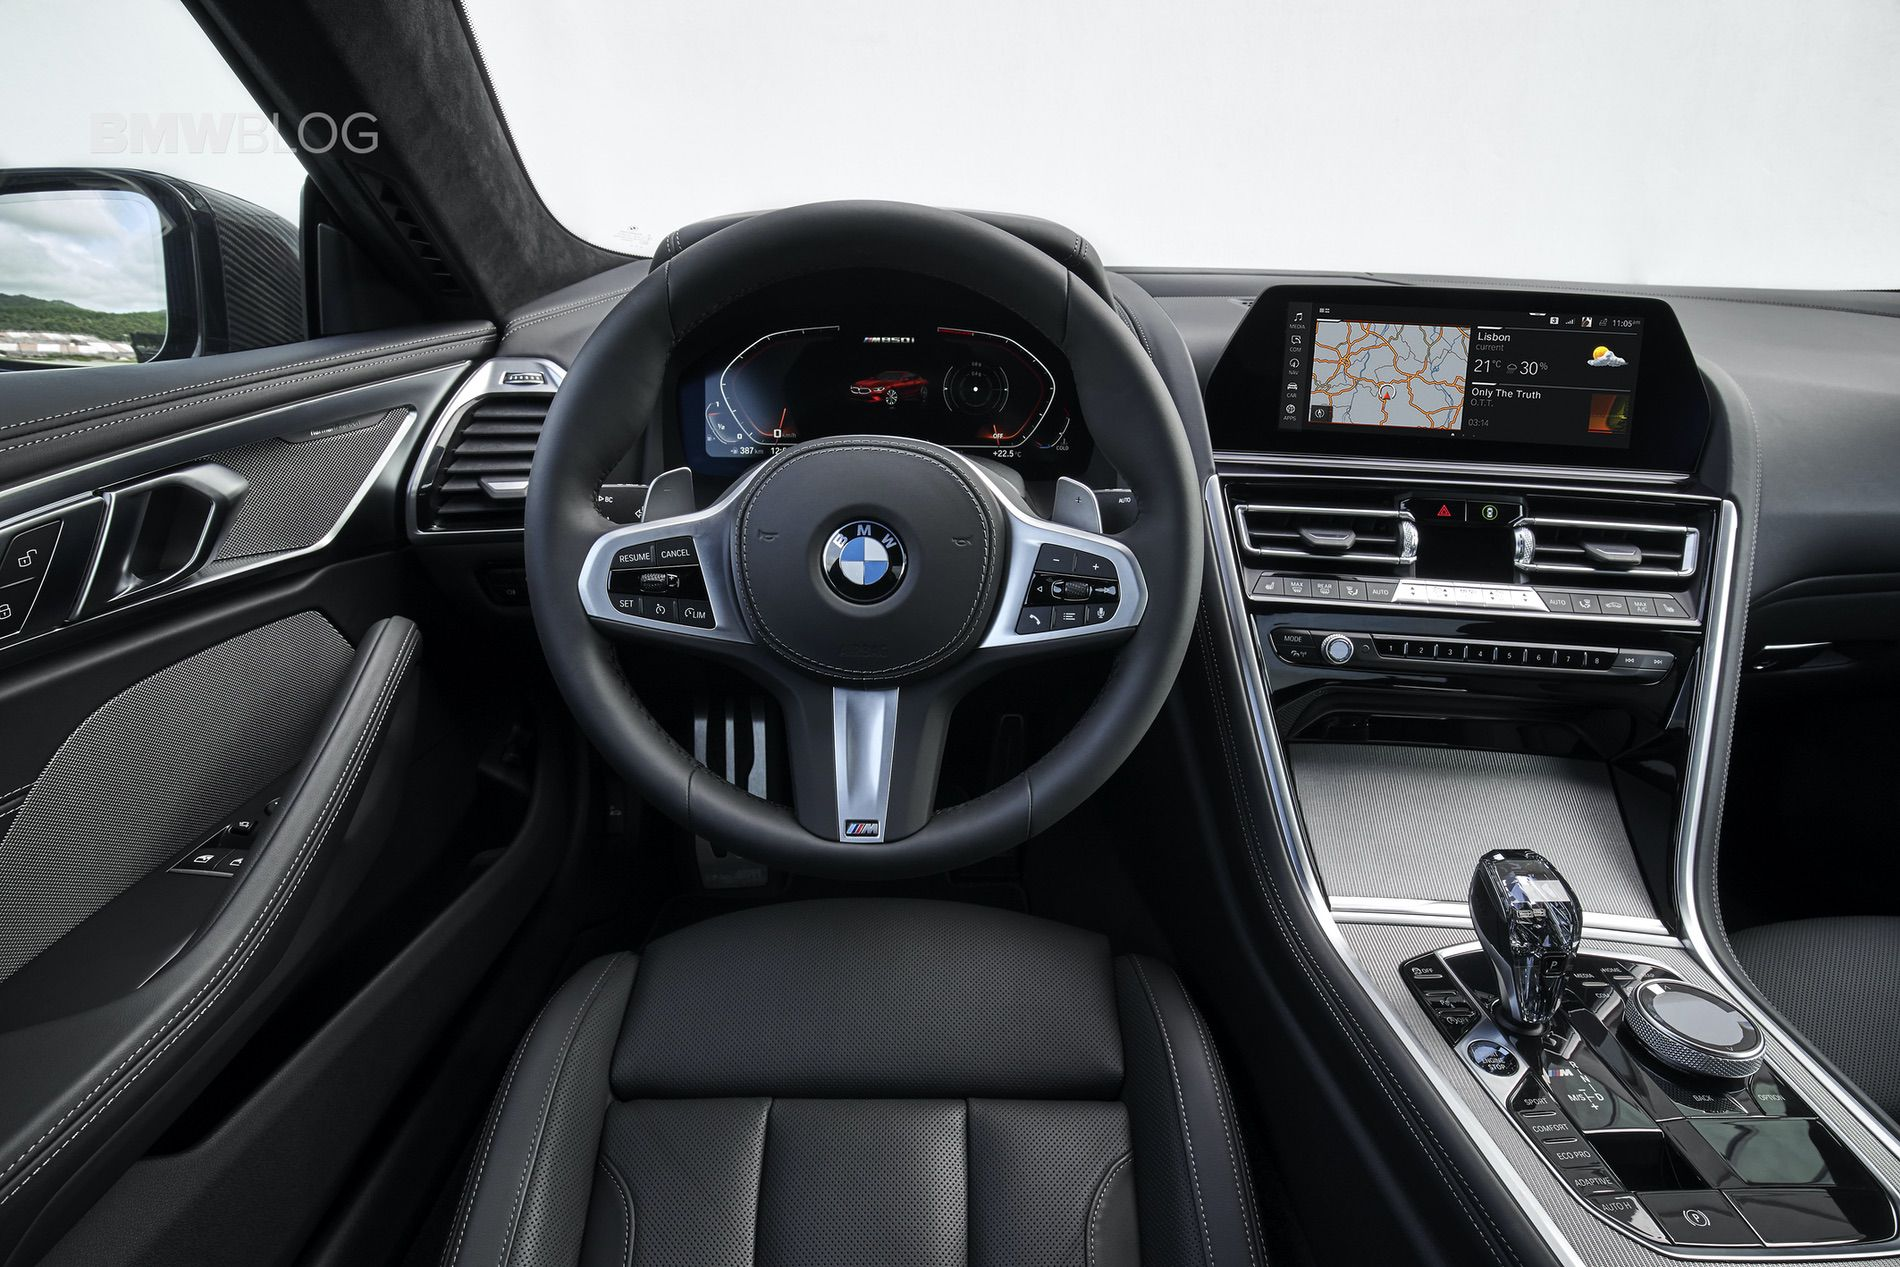 What Are Others Saying About The Bmw M850i Sosialpolitik Catriona Maika Top Handle Bag Pink Autocar Was Among Those That Liked It But Didnt Love 8 Series Integral Active Steering System Is More Intuitive In Use Than Similar Set Ups